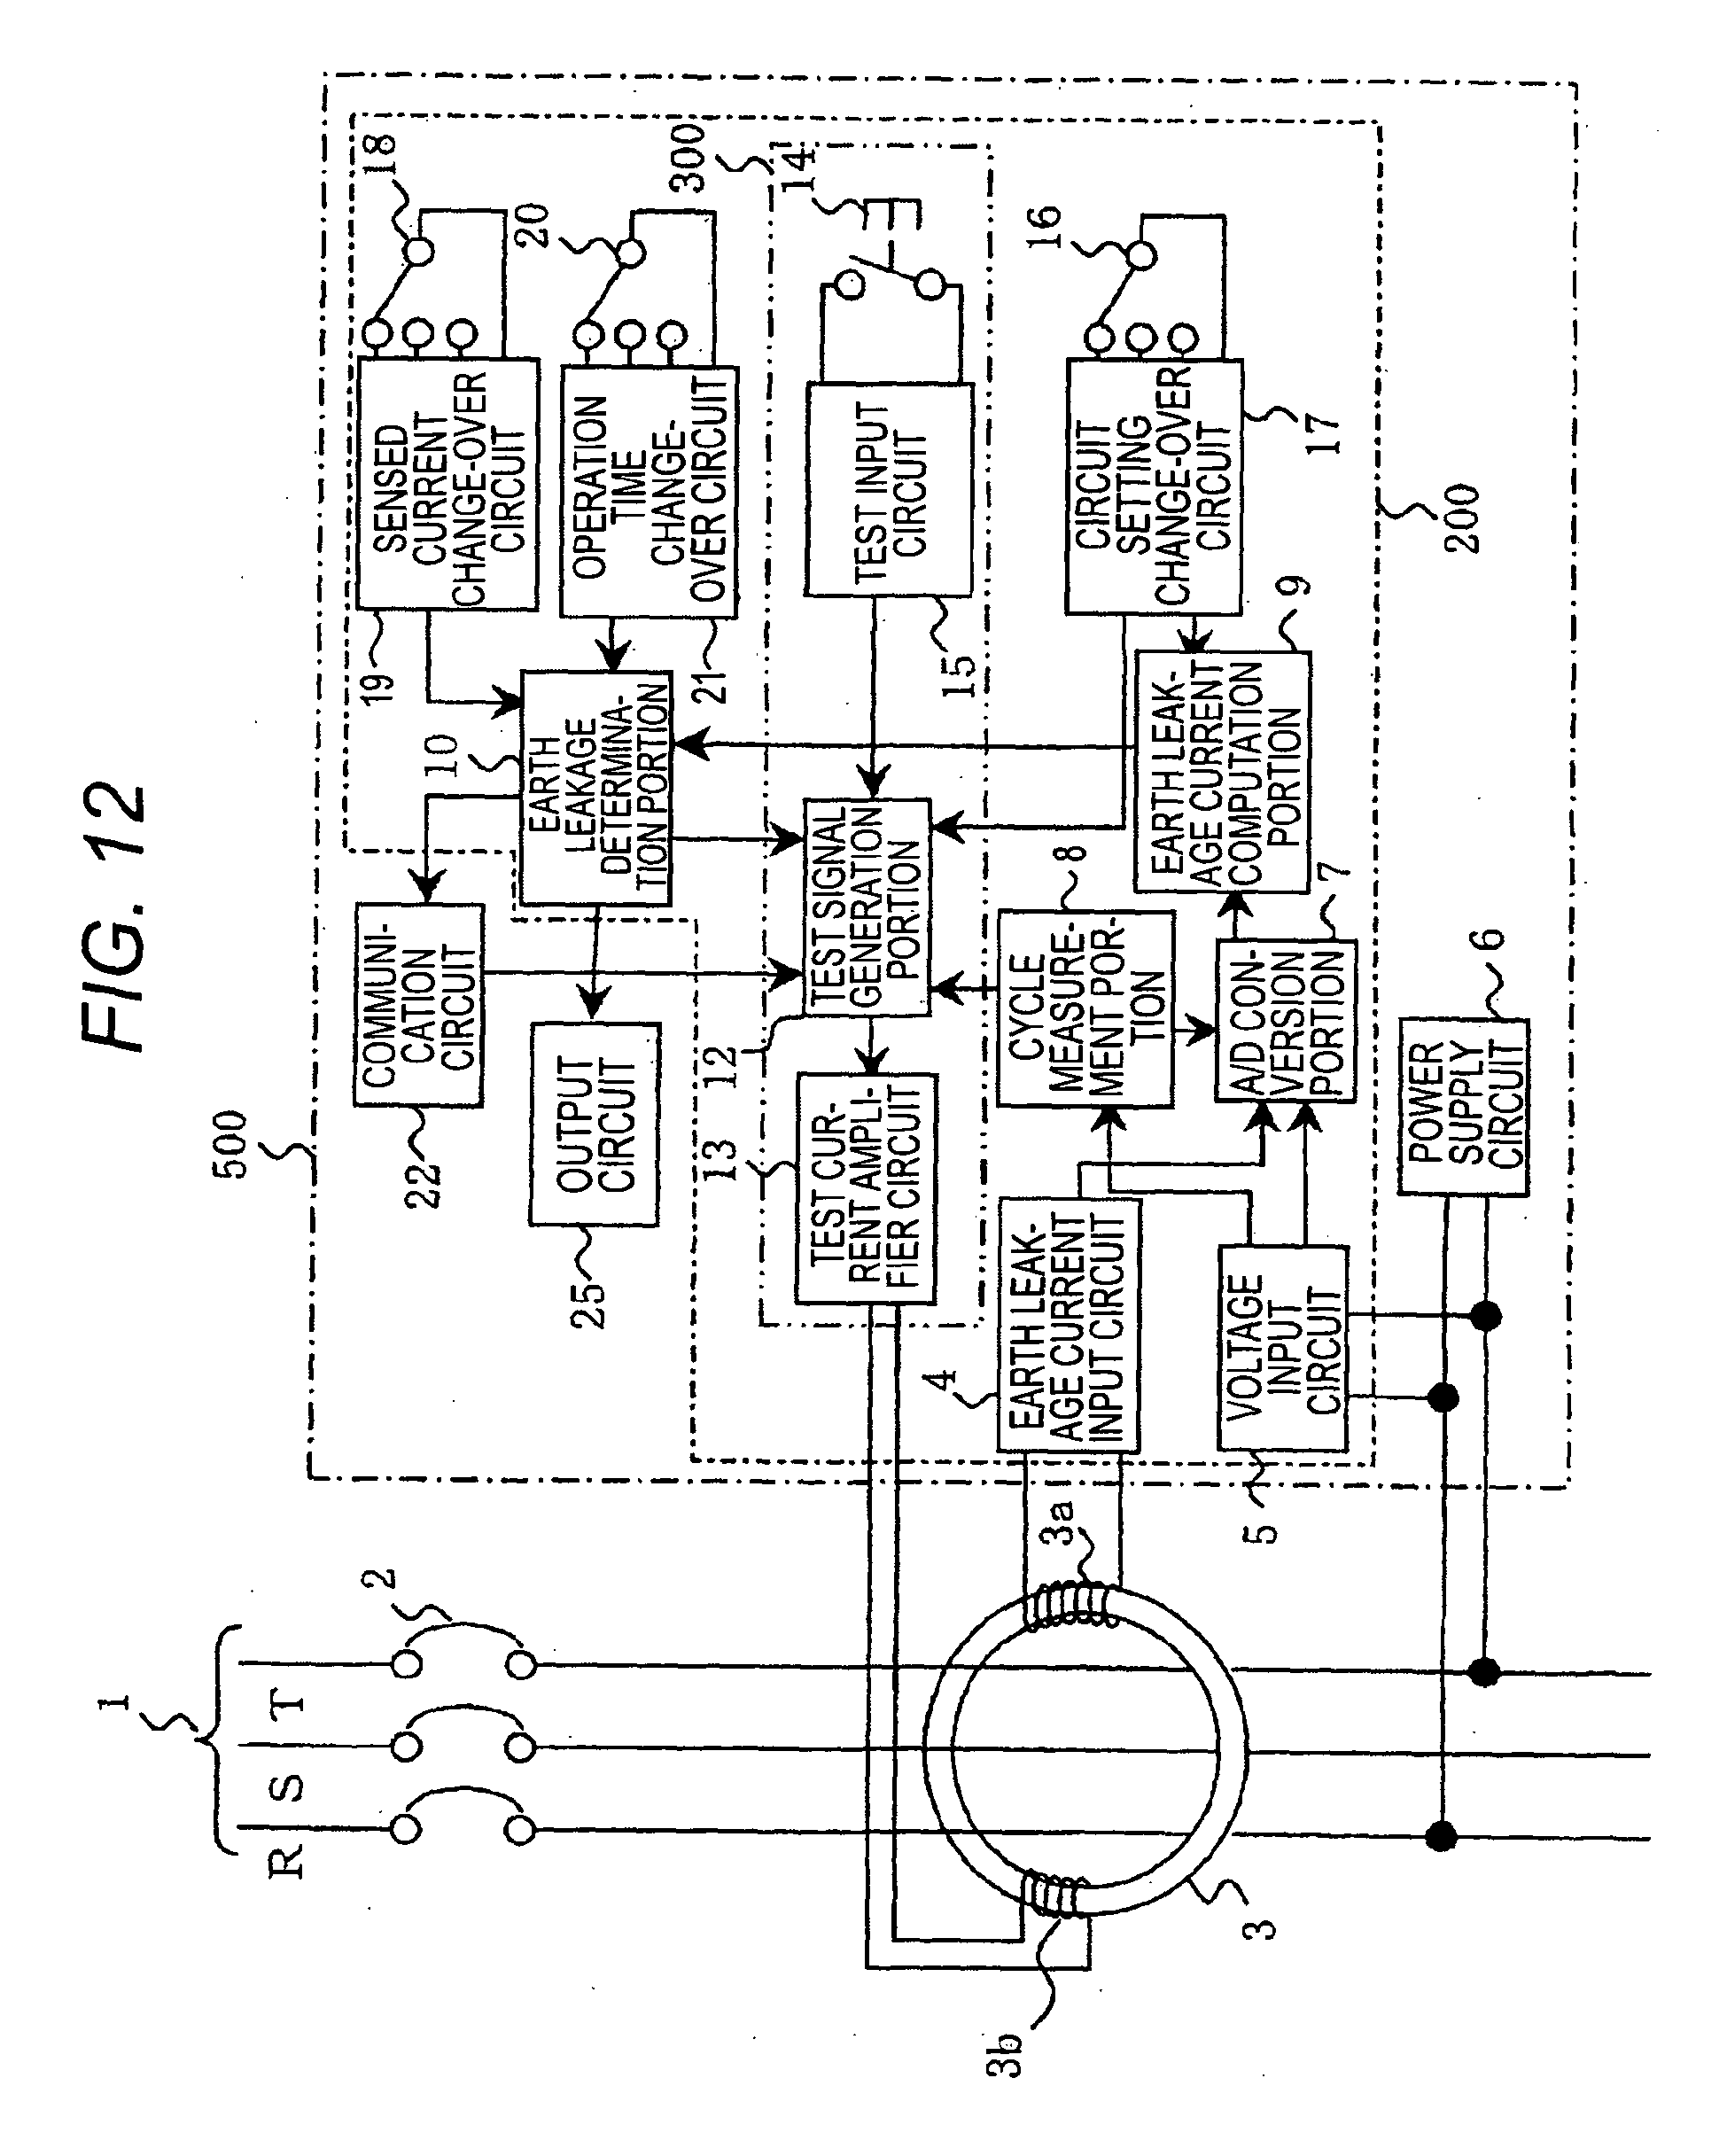 Electric Circuit Drawing At Free For Personal Use Automotive Wiring Diagram Creator 1949x2433 Using Motor Bridges Relay Components